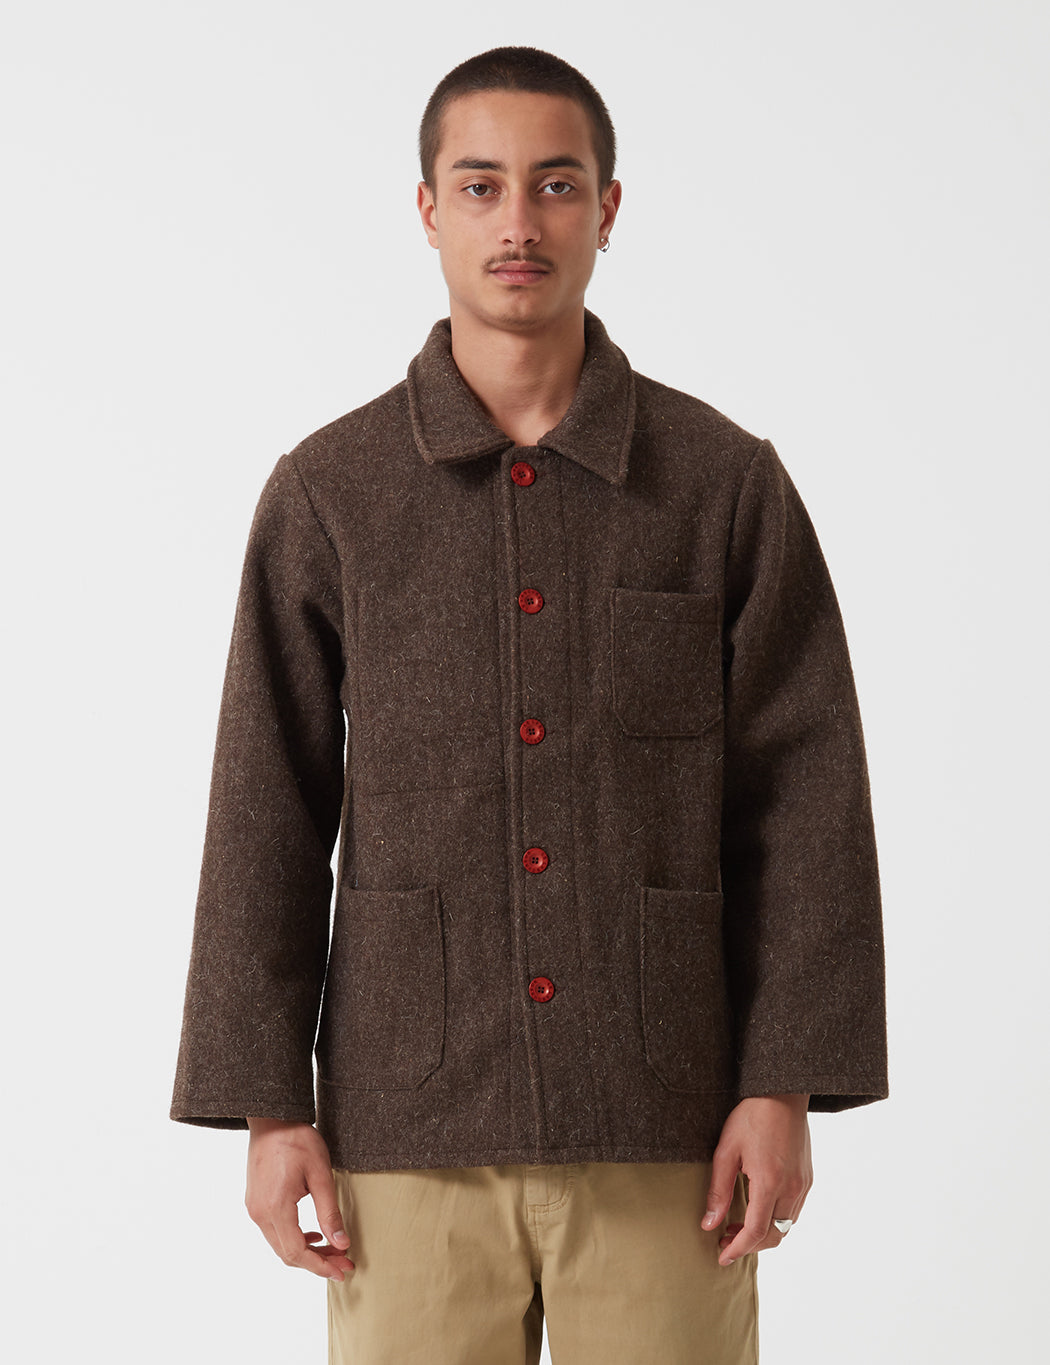 Le Laboureur Wool Work Jacket - Brown